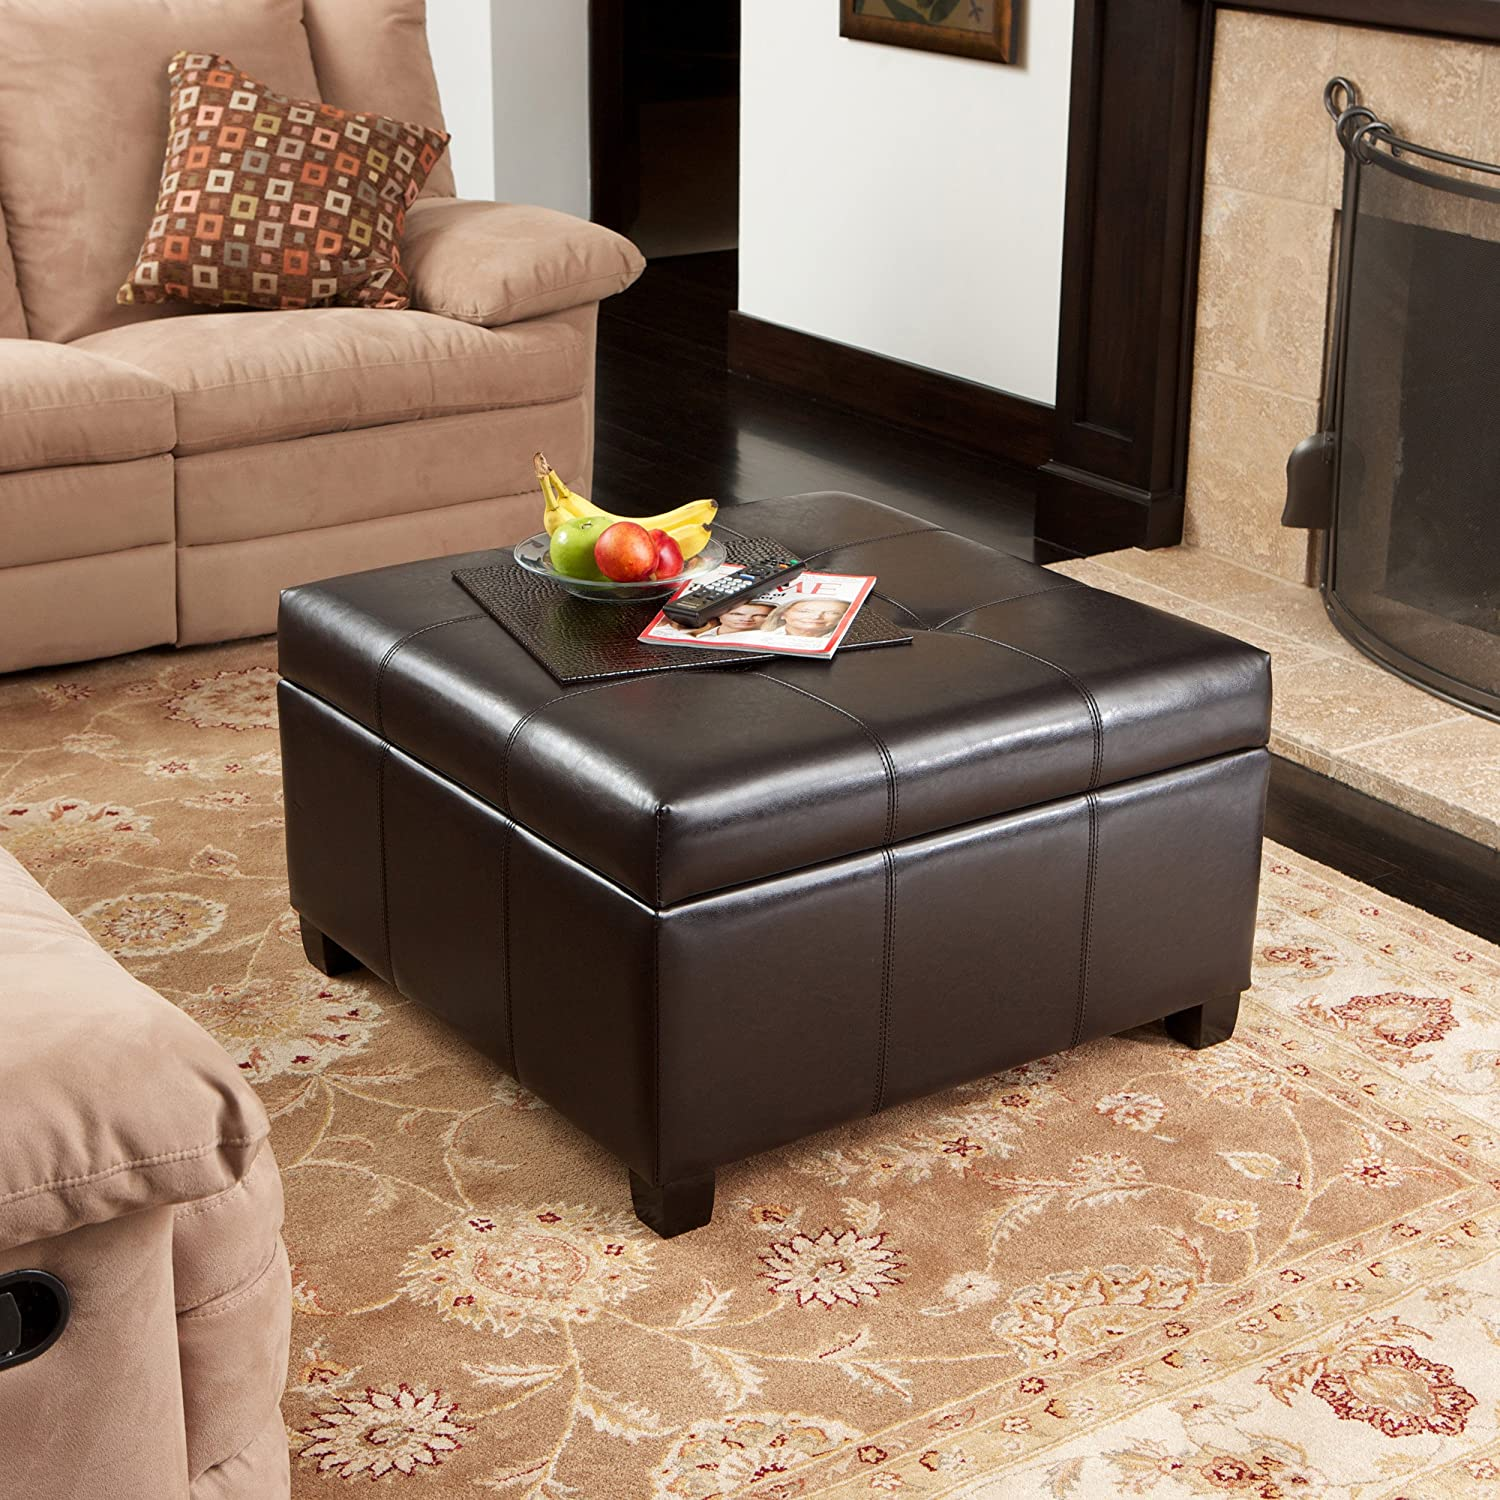 Best Selling Storage Ottoman Coffee Table Square Shaped Premium Bonded Leather In Espresso Brown